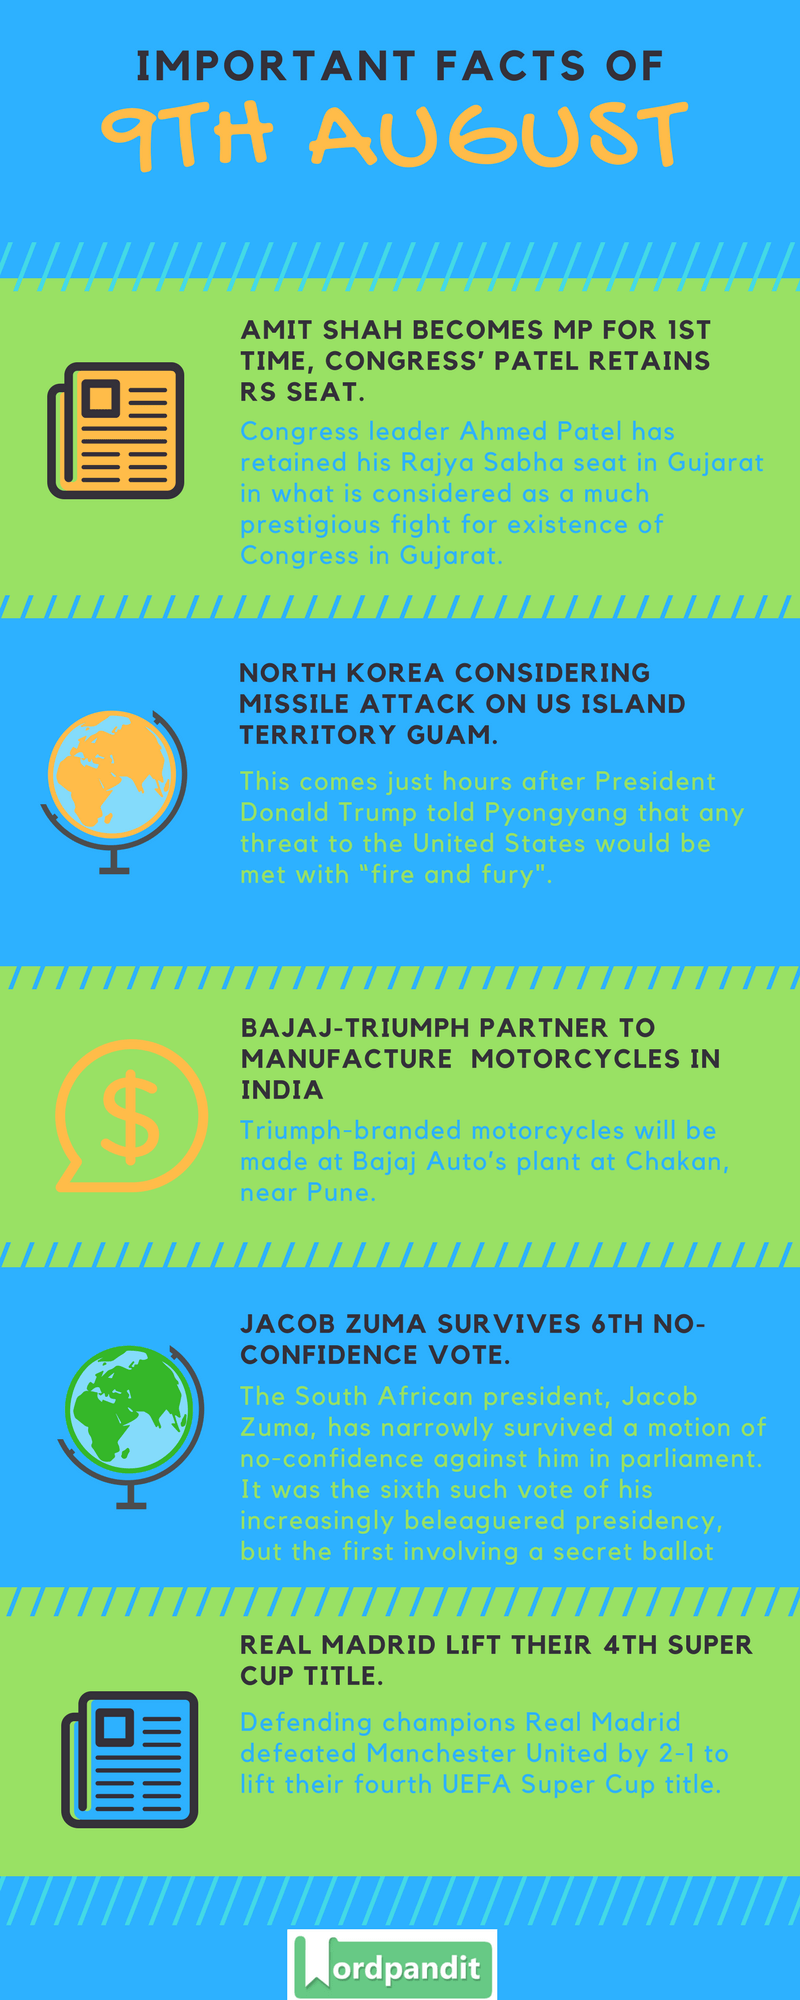 Daily-Current-Affairs-9-august-2017-Current-Affairs-Quiz-august-9-2017-Current-Affairs-Infographic